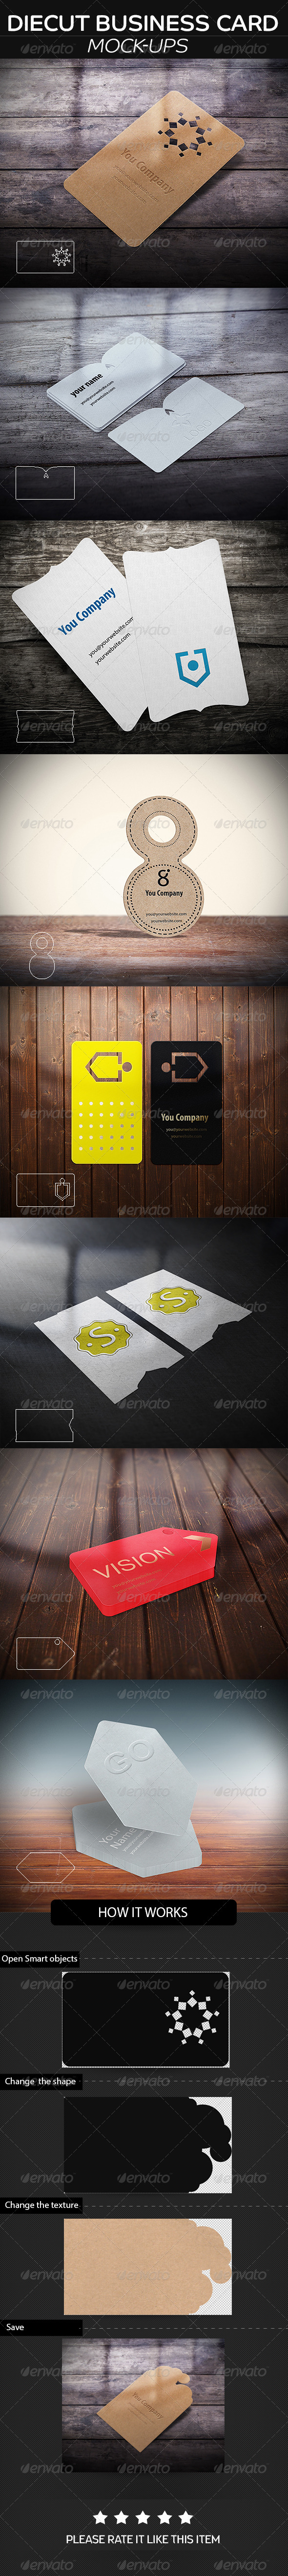 GraphicRiver DieCut Business Card Mockup 8243376